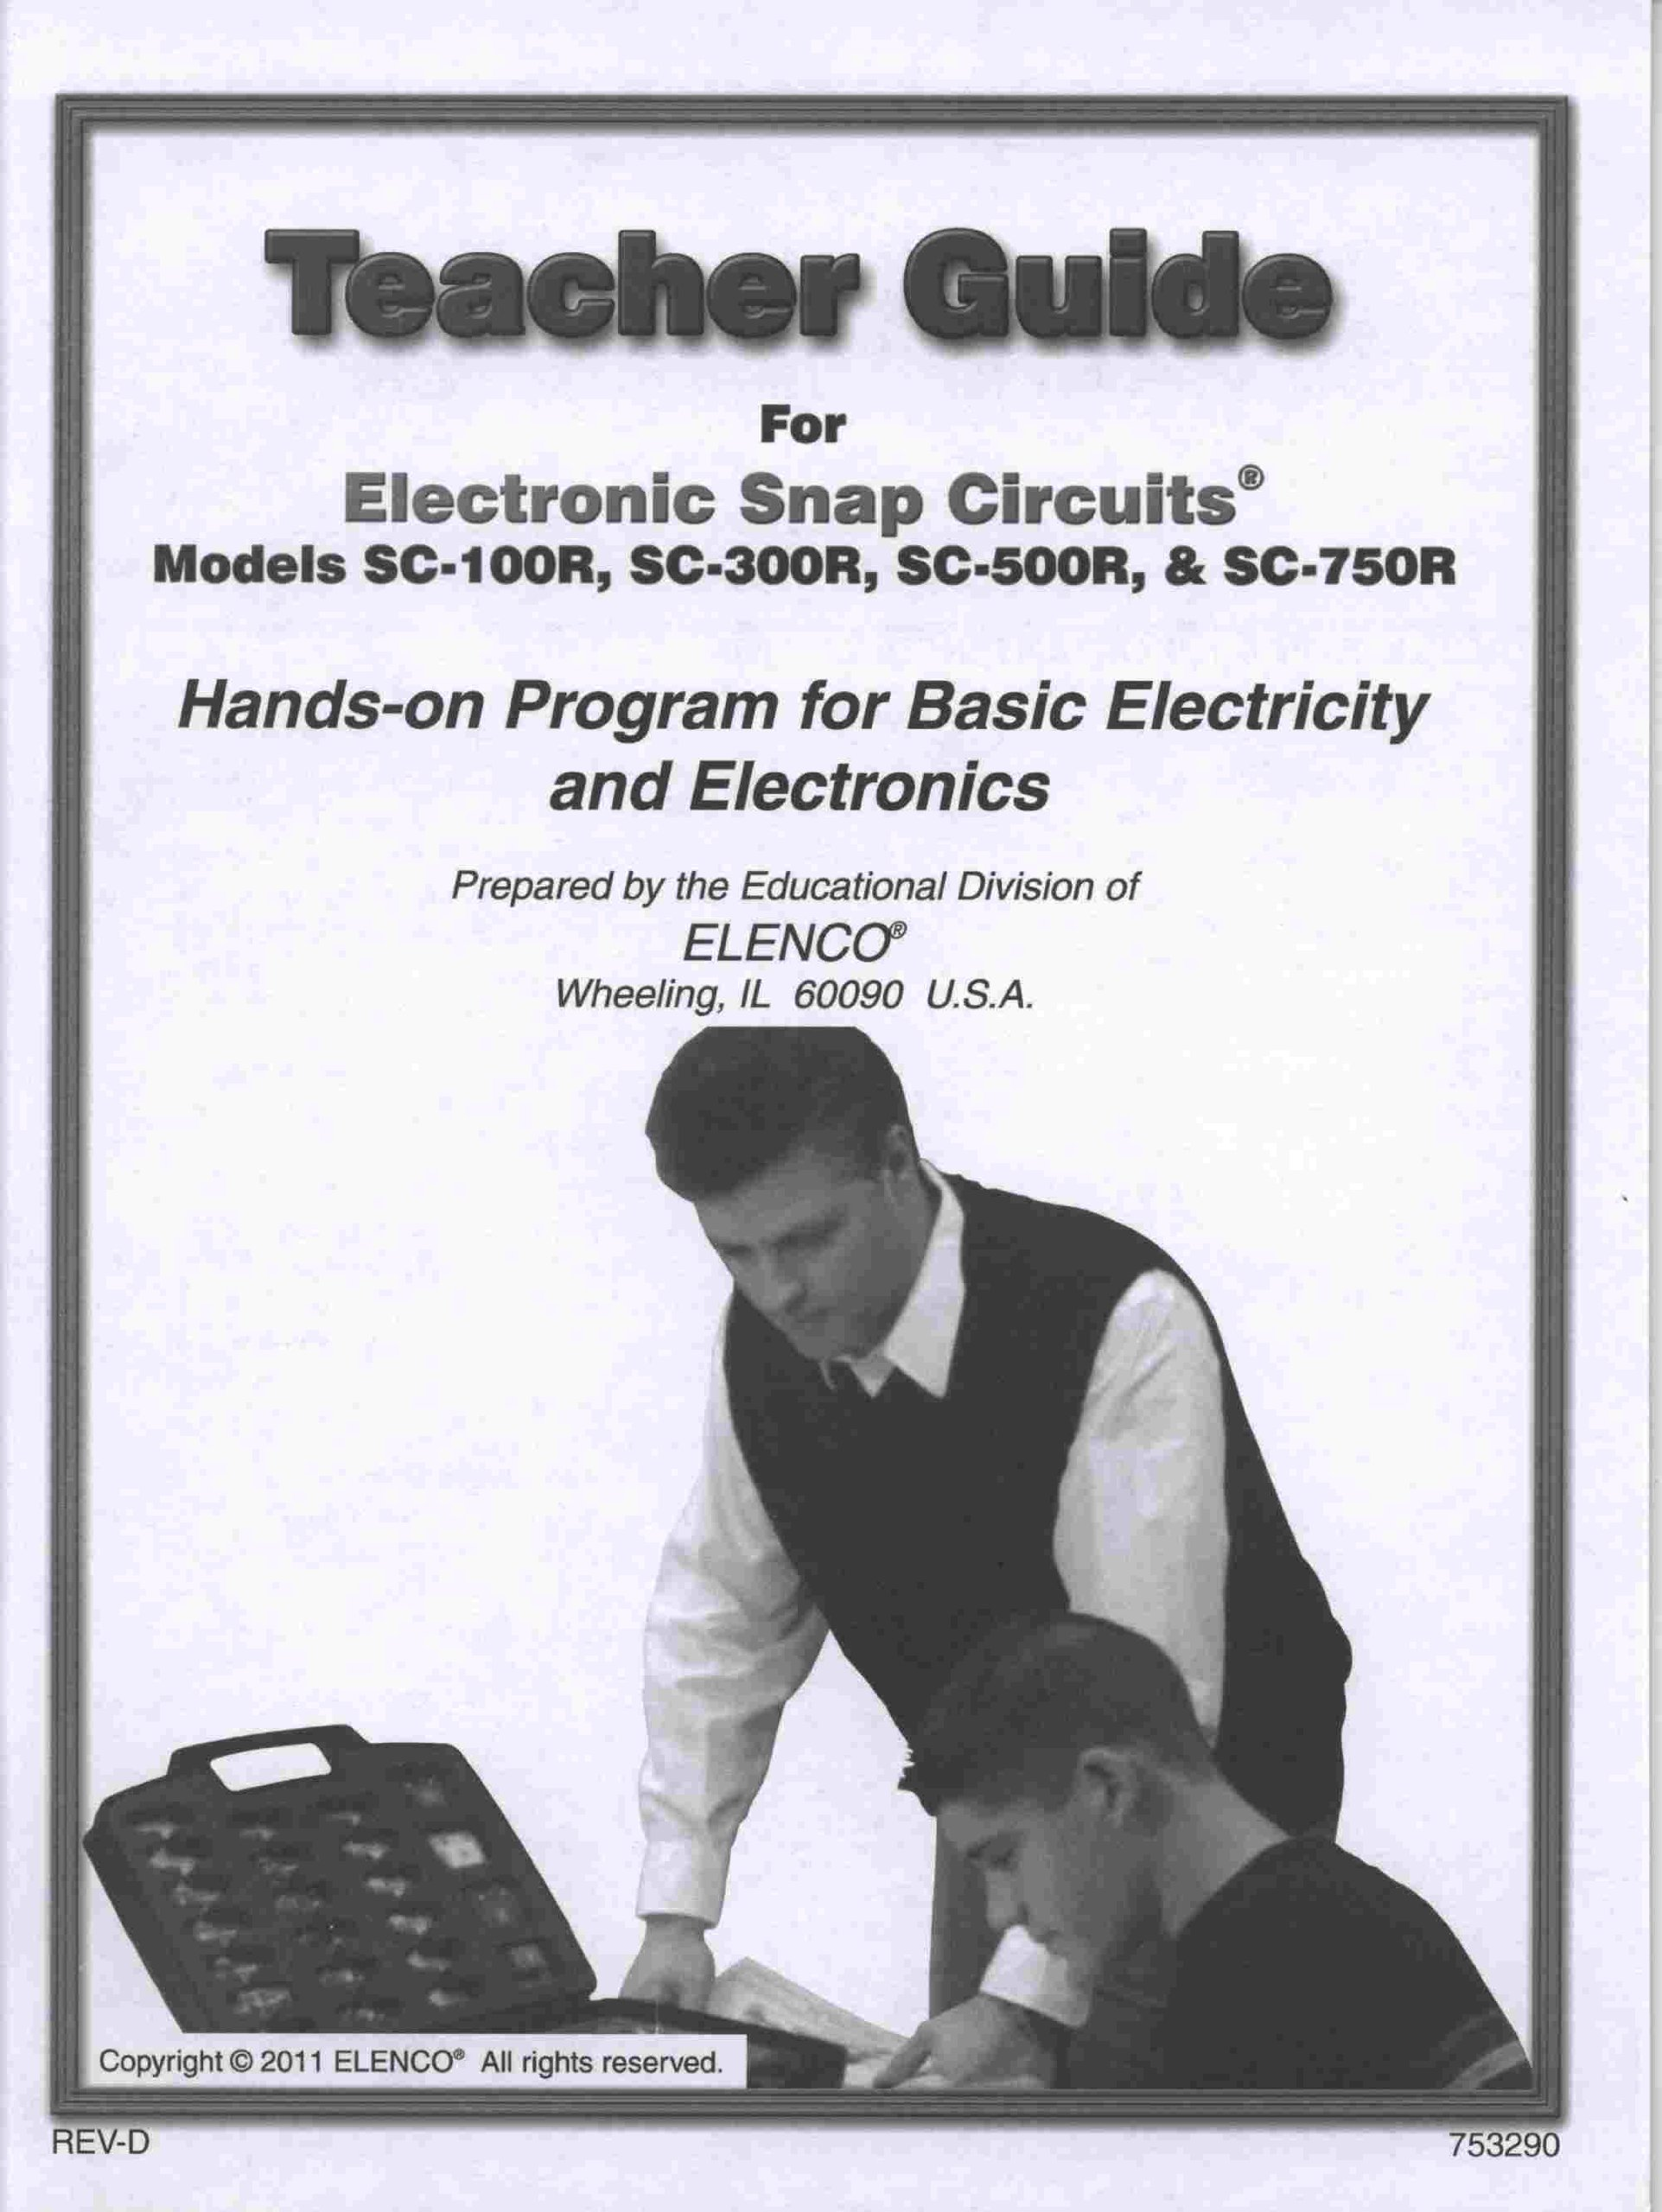 Download Teacher Guide for Electronic Snap Circuits Hands-on Program for Basic Electricity (Models SC-100R, SC-300R, SC-500R, & SC-750R) ebook